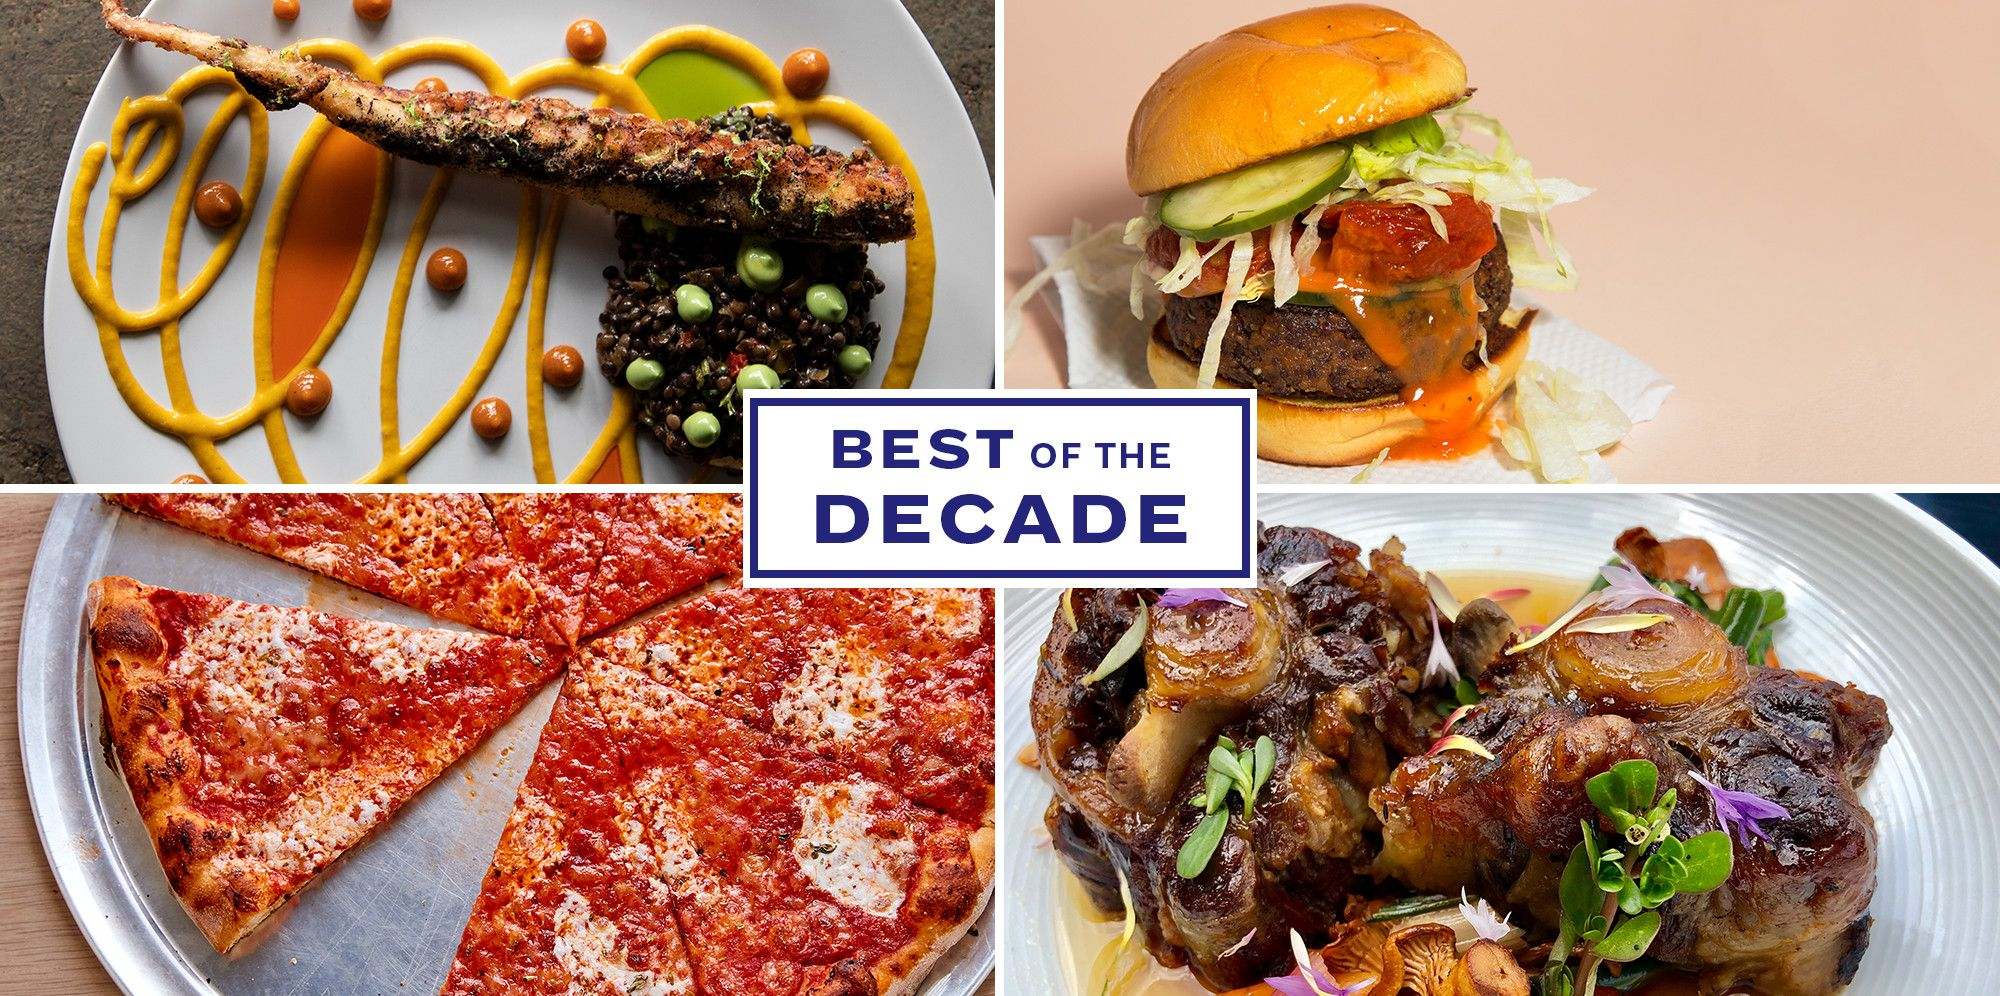 The 40 Most Important Restaurants of the Decade